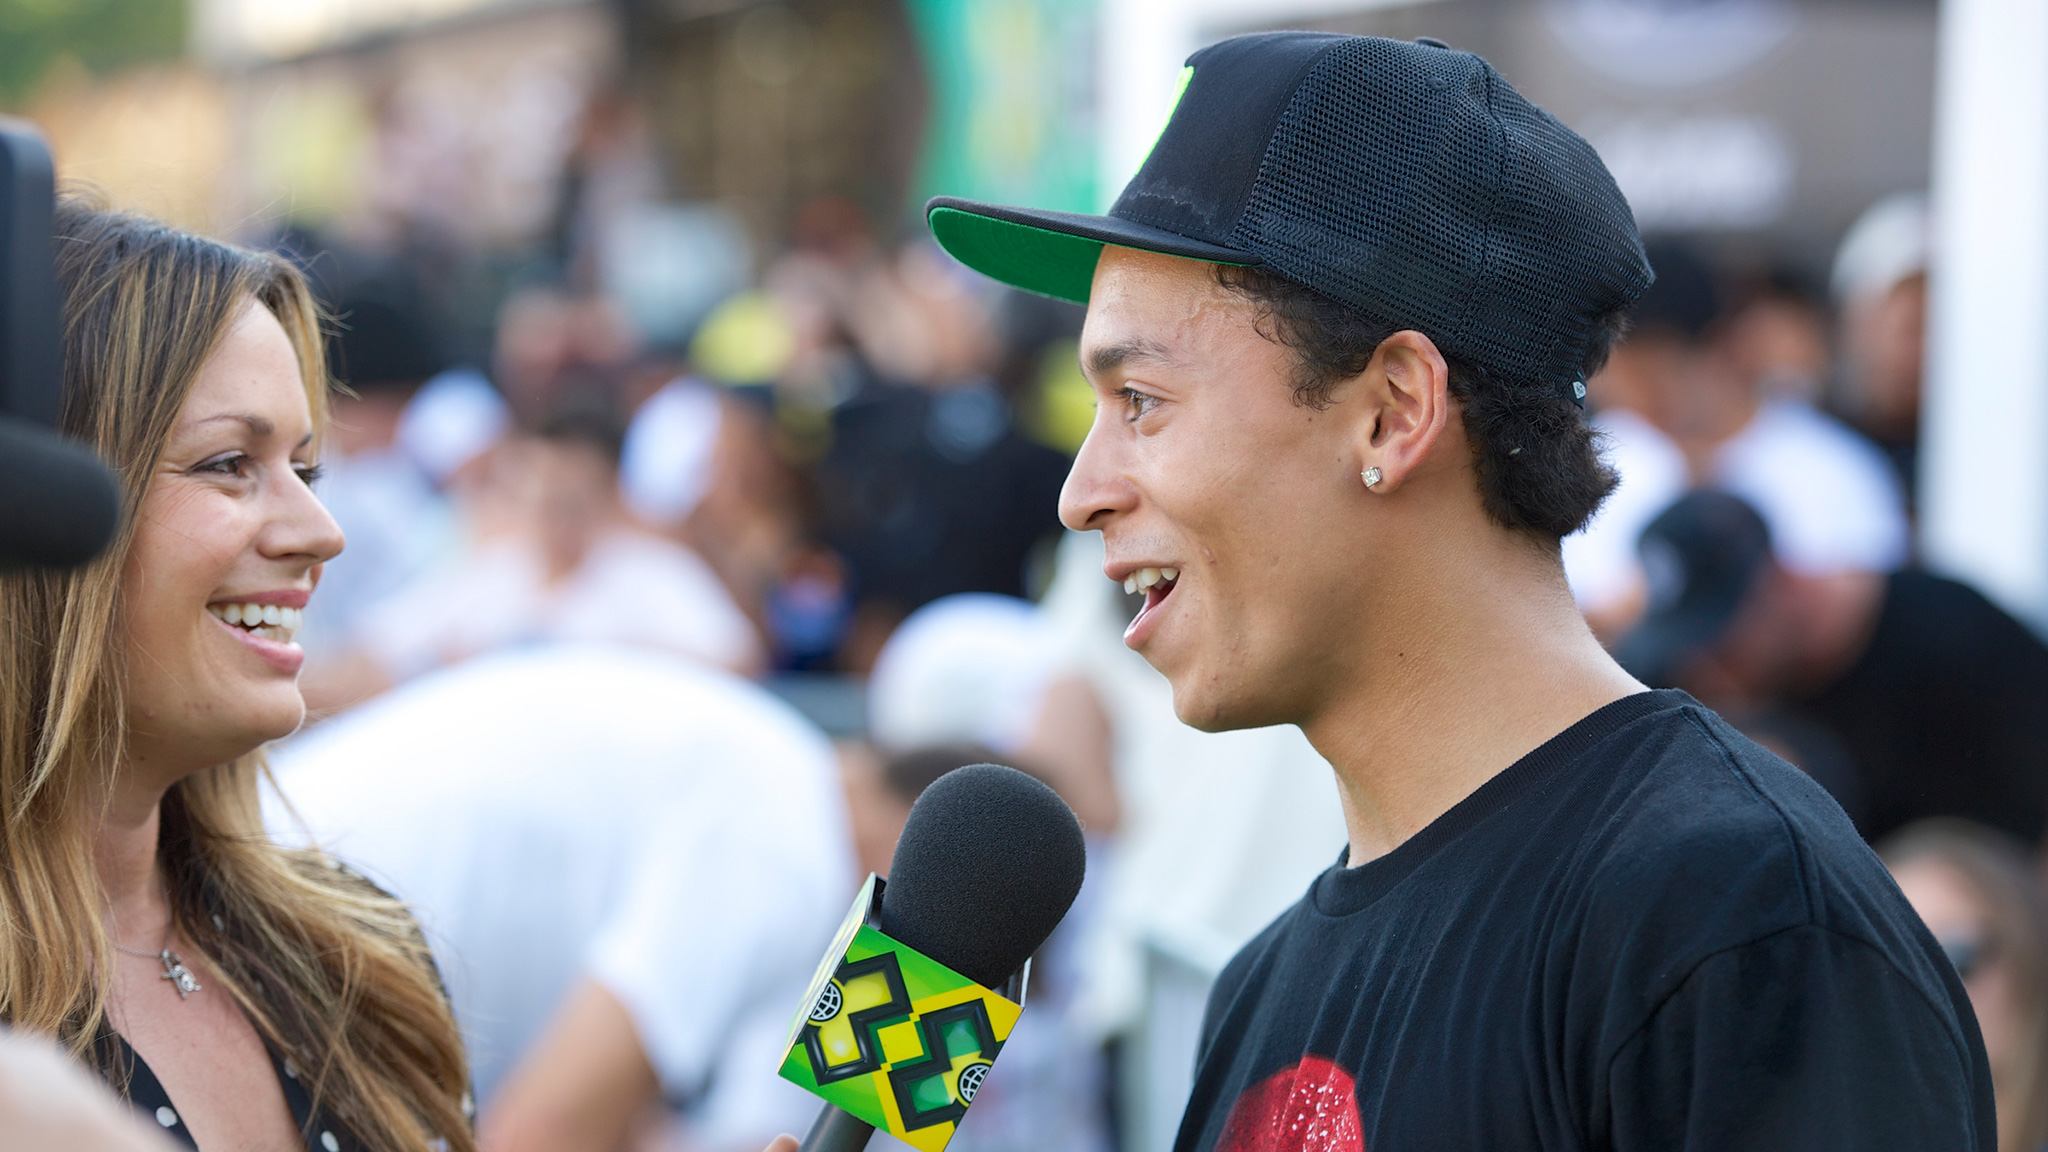 Nyjah Huston -- Street League Skateboarding